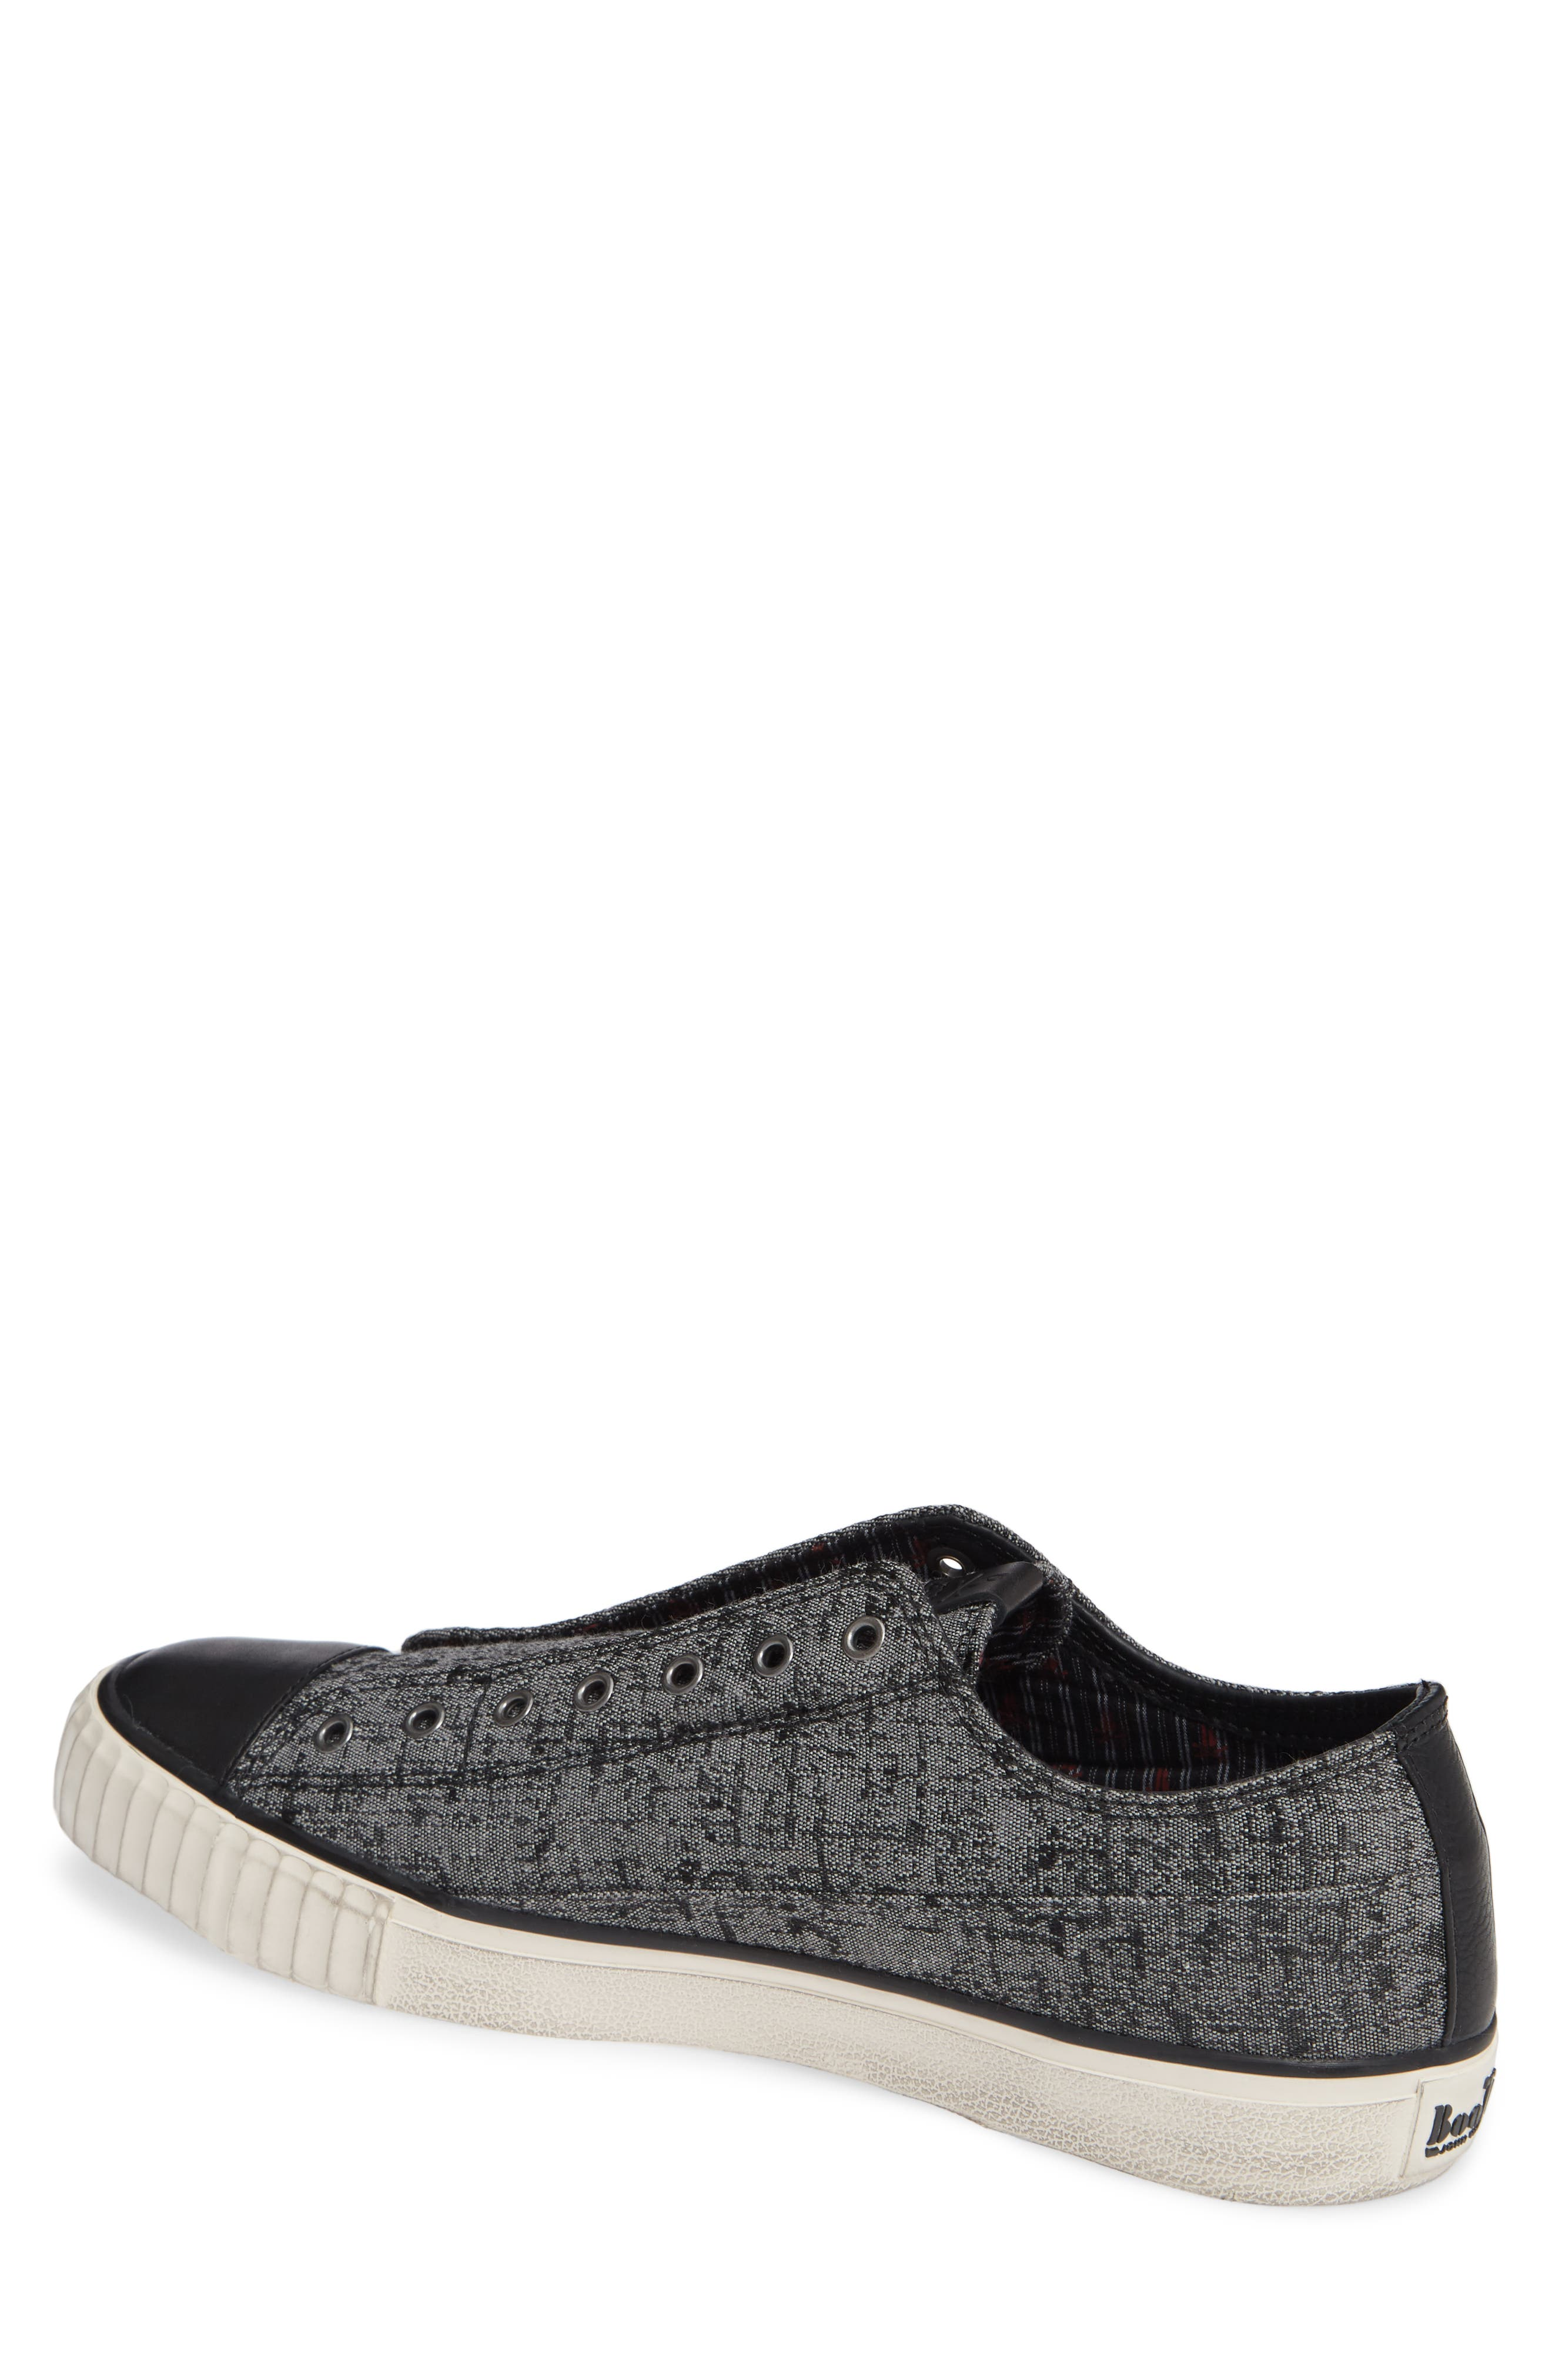 BOOTLEG BY JOHN VARVATOS, John Varvatos Star USA Bootleg Laceless Sneaker, Alternate thumbnail 2, color, STONE GREY CANVAS